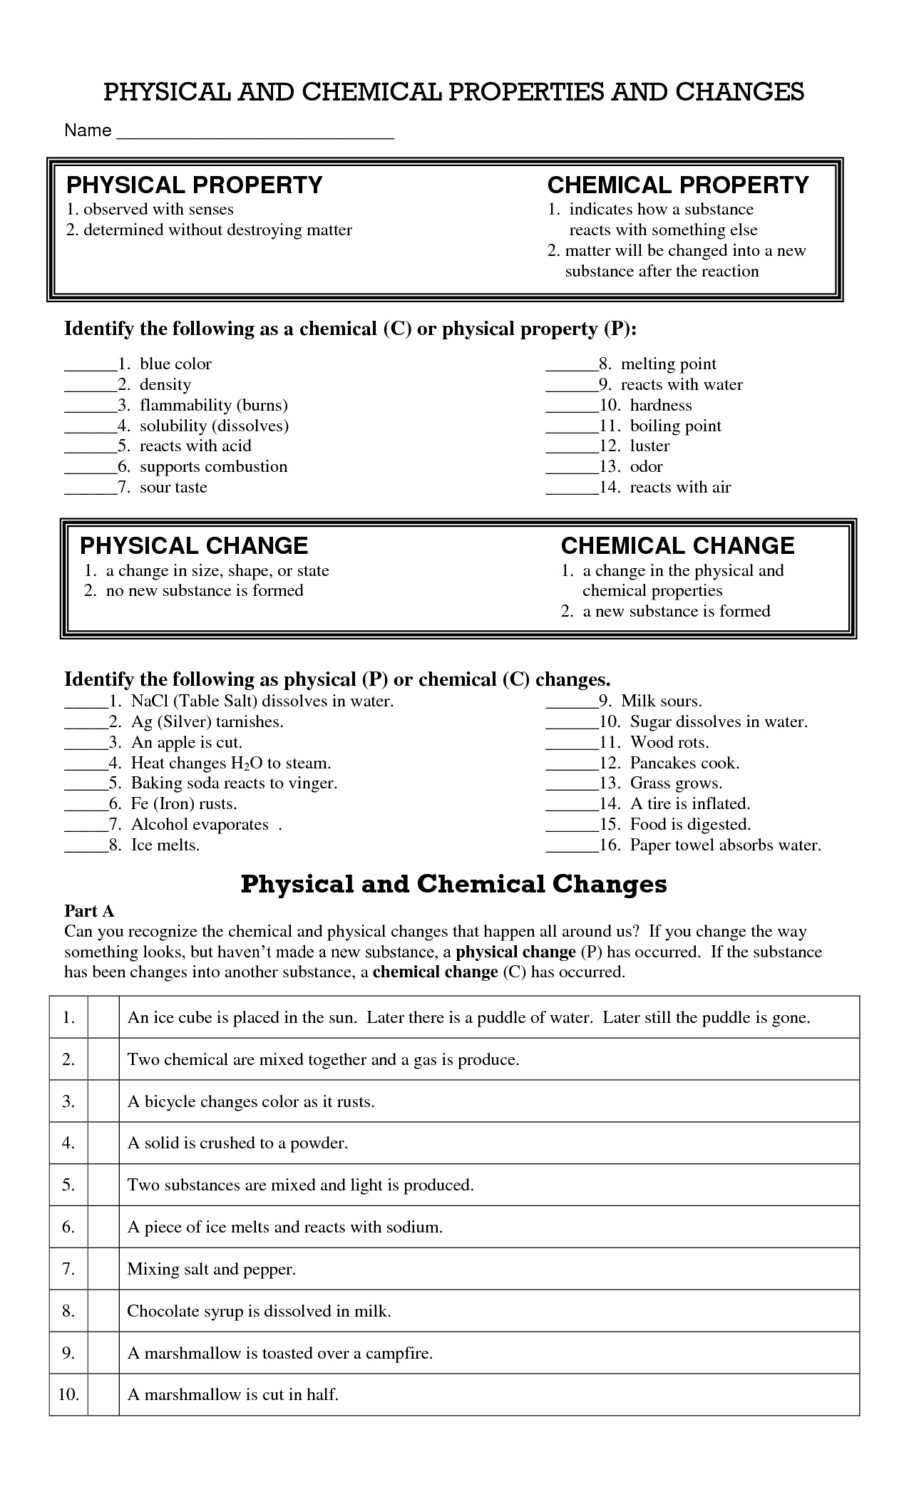 Proficiency Worksheet Physical And Chemical Changes Chemical And – Physical Chemical Properties Changes Worksheet